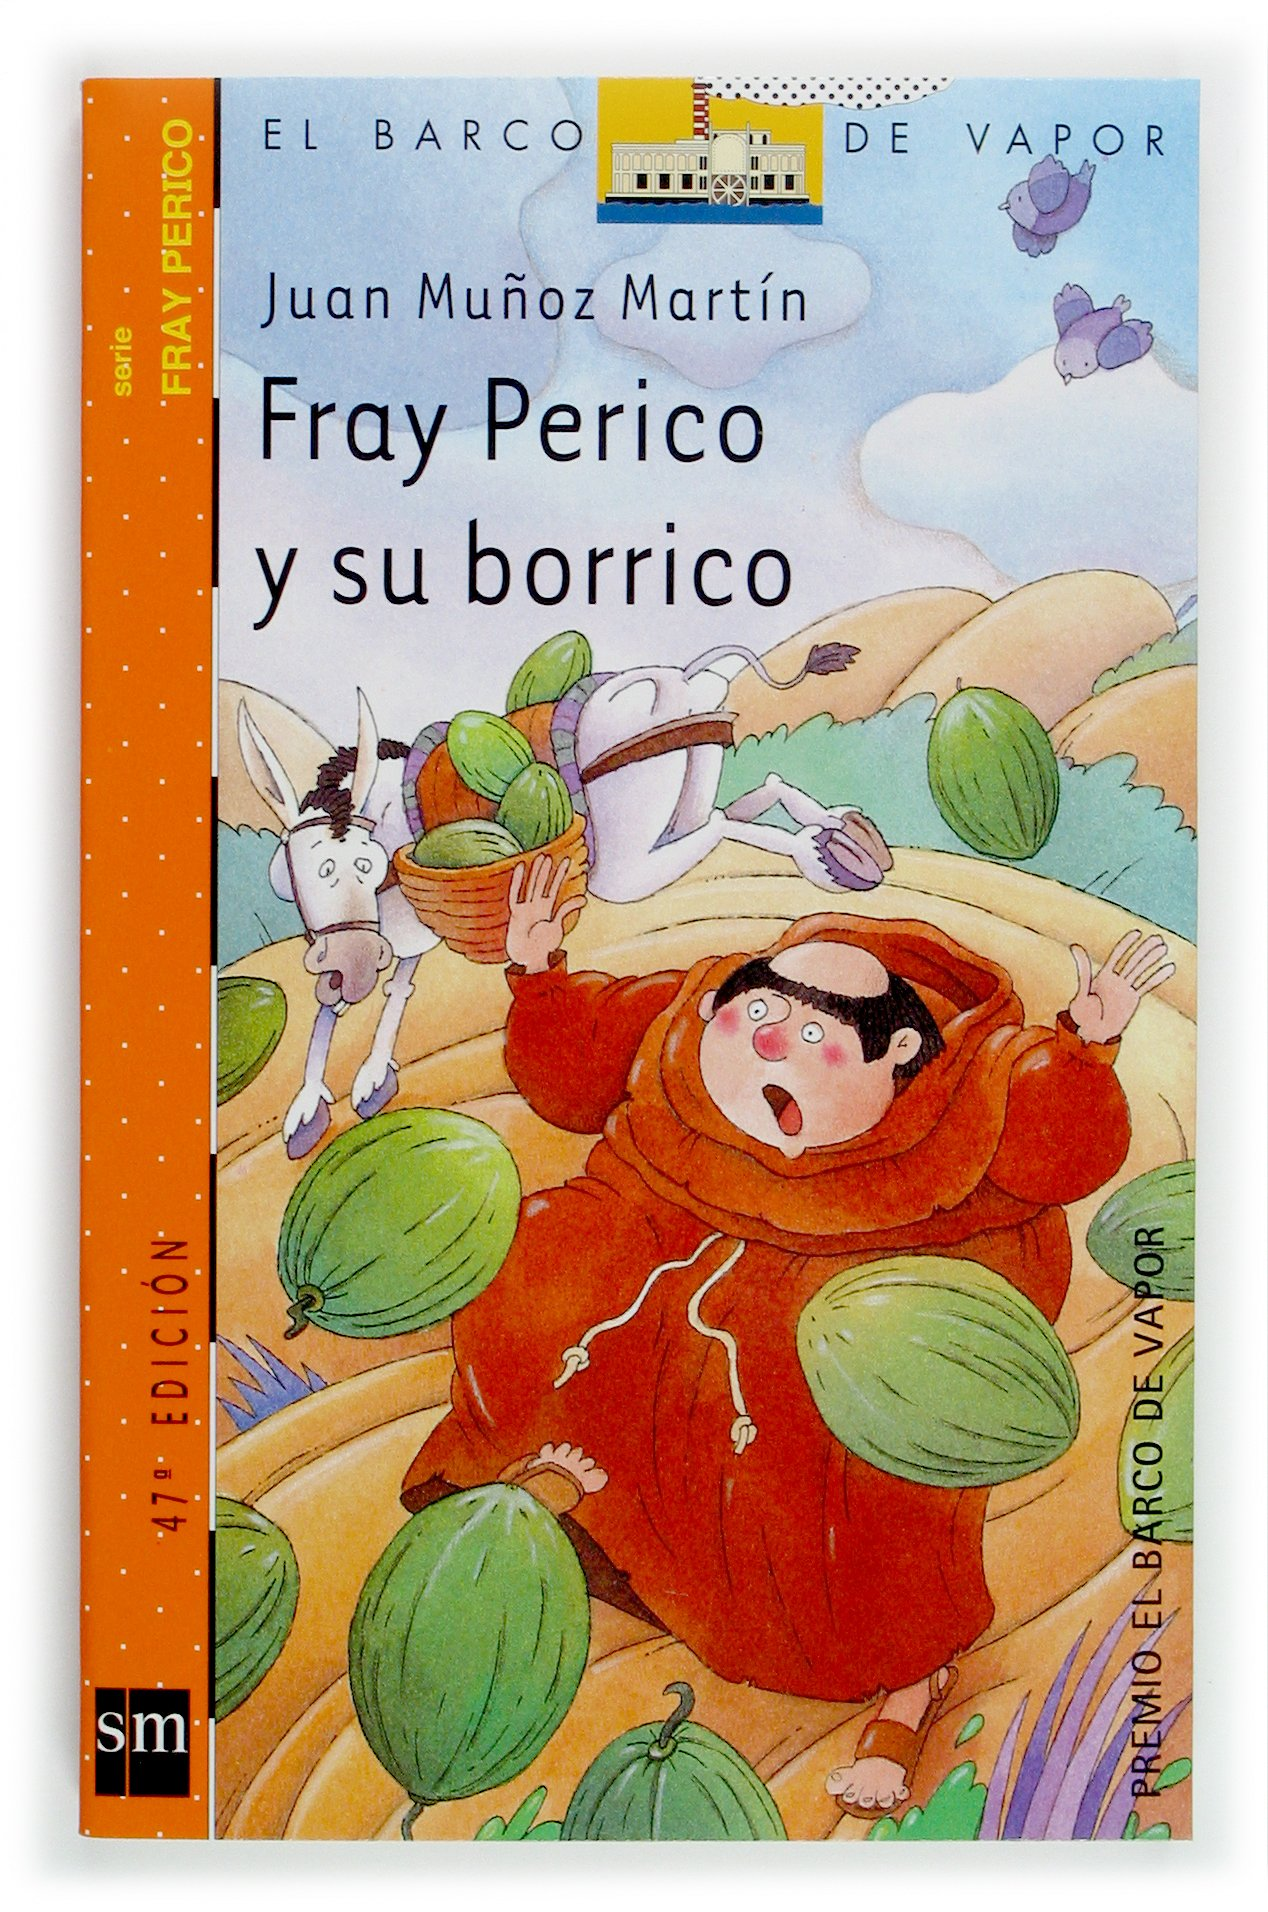 Fray Perico Y Su Borrico Brother Perico And His Donkey Martin Juan Munoz 9788434894099 Books Amazon Ca